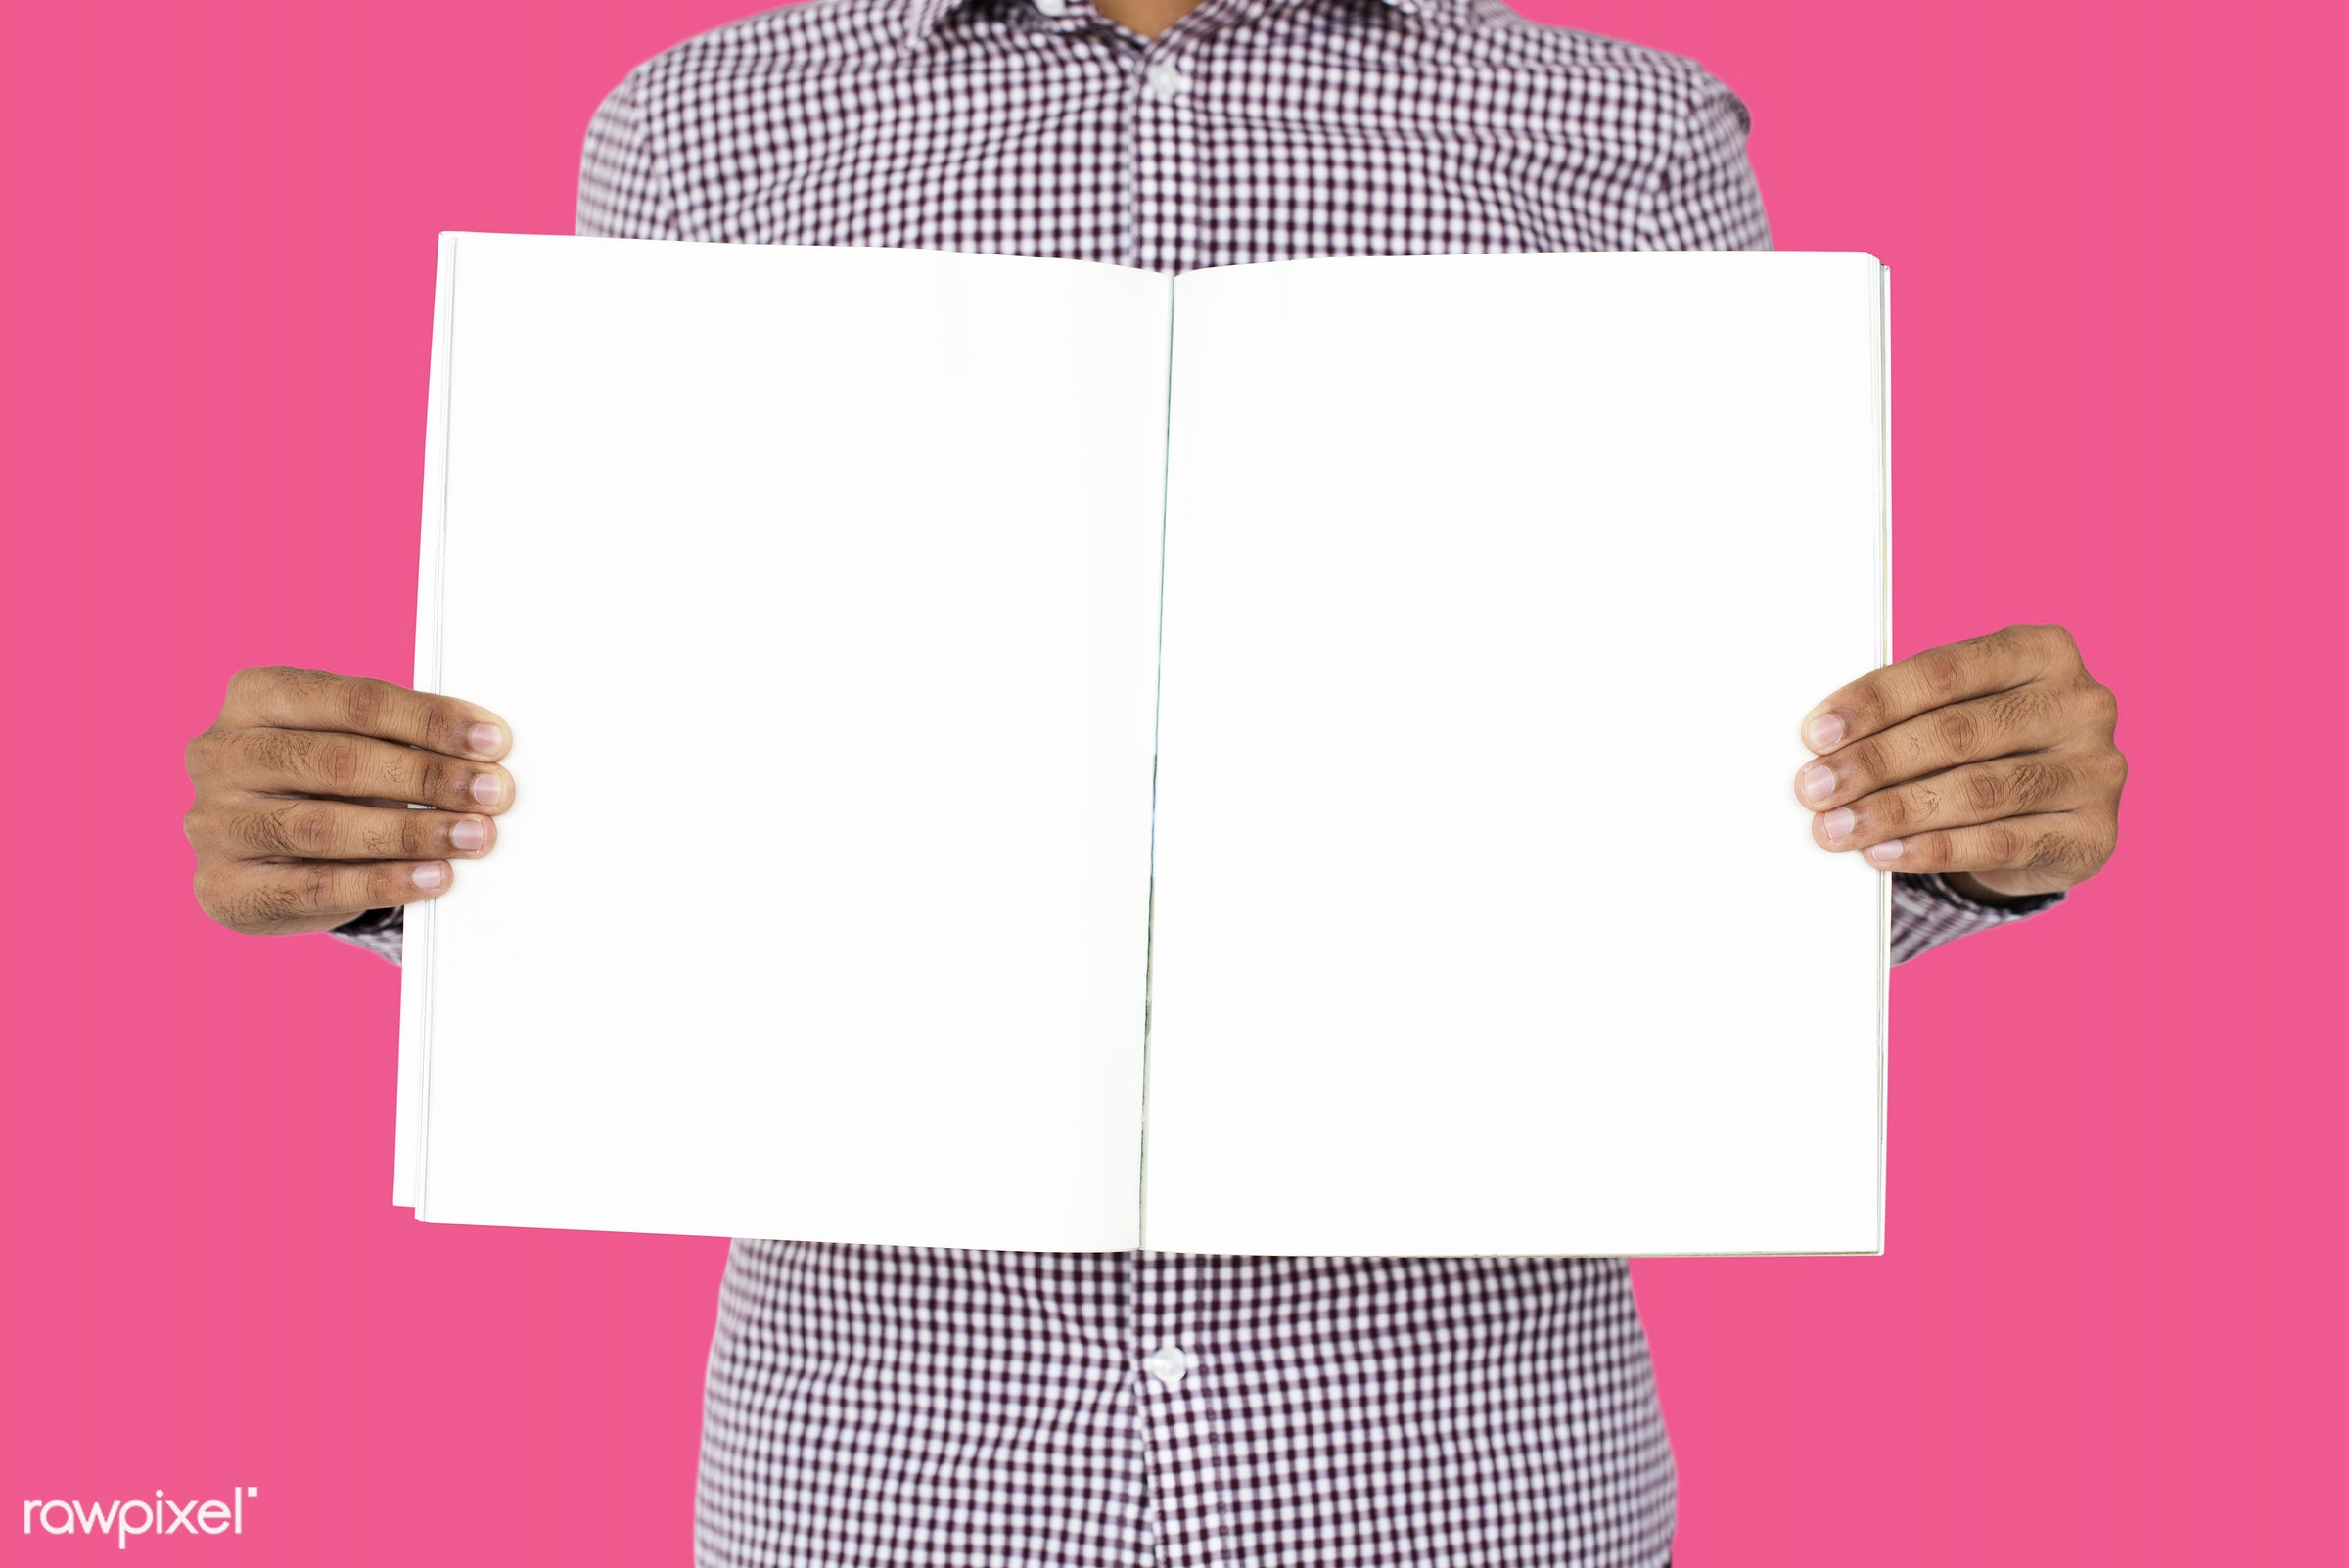 expression, studio, model, person, copyspace, holding, paper, advertising, people, empty, showing, sheet, man, banner,...